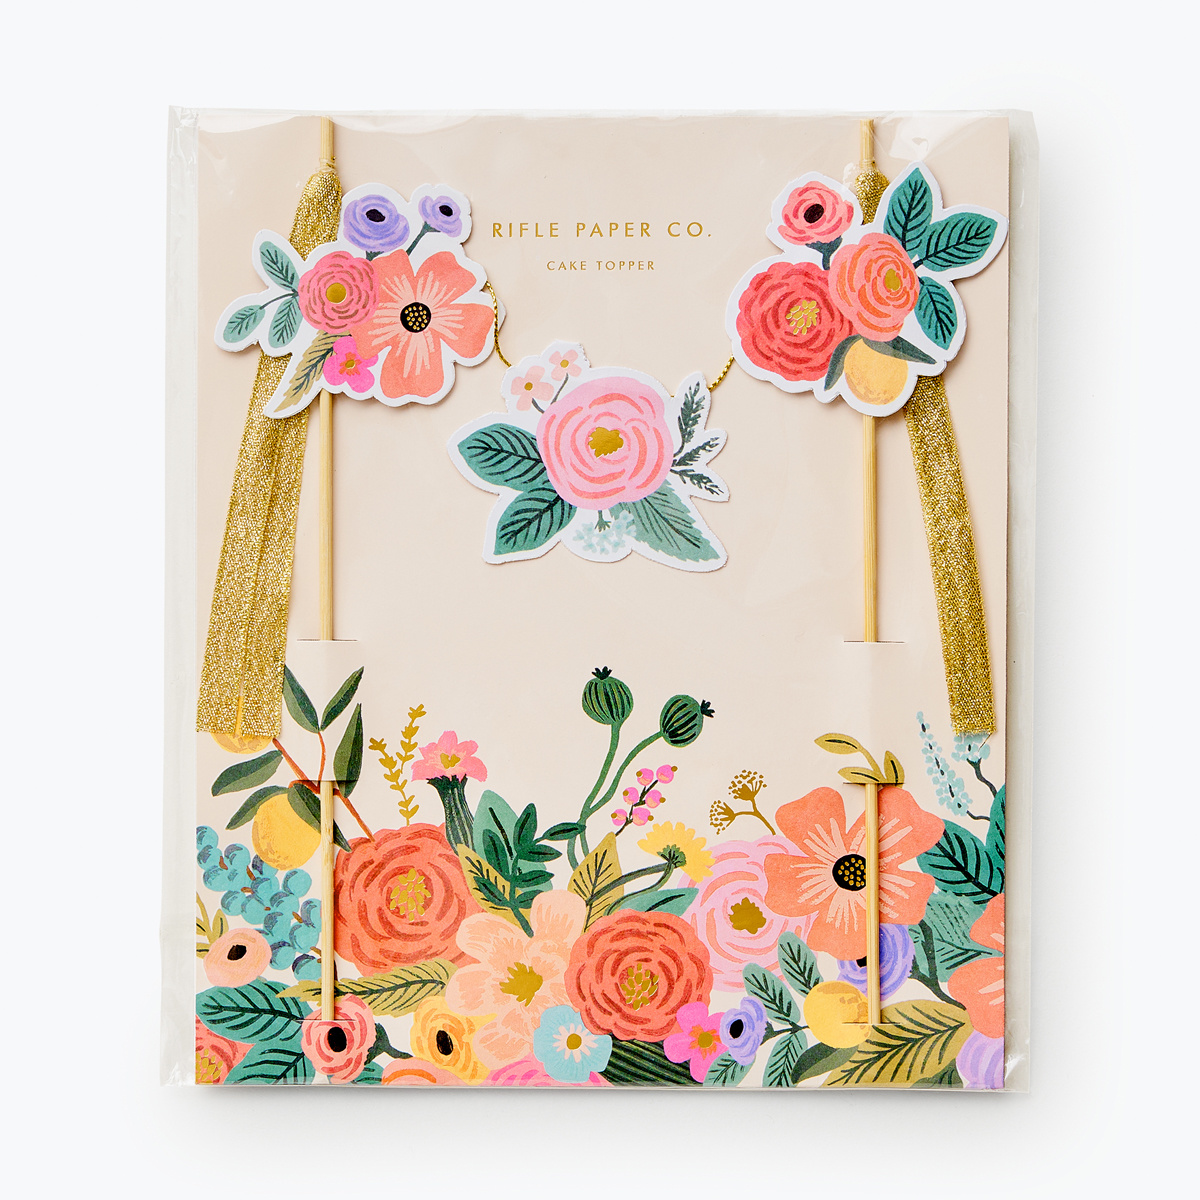 Rifle Paper Co - RP Rifle Paper Co - Garden Party Cake Topper